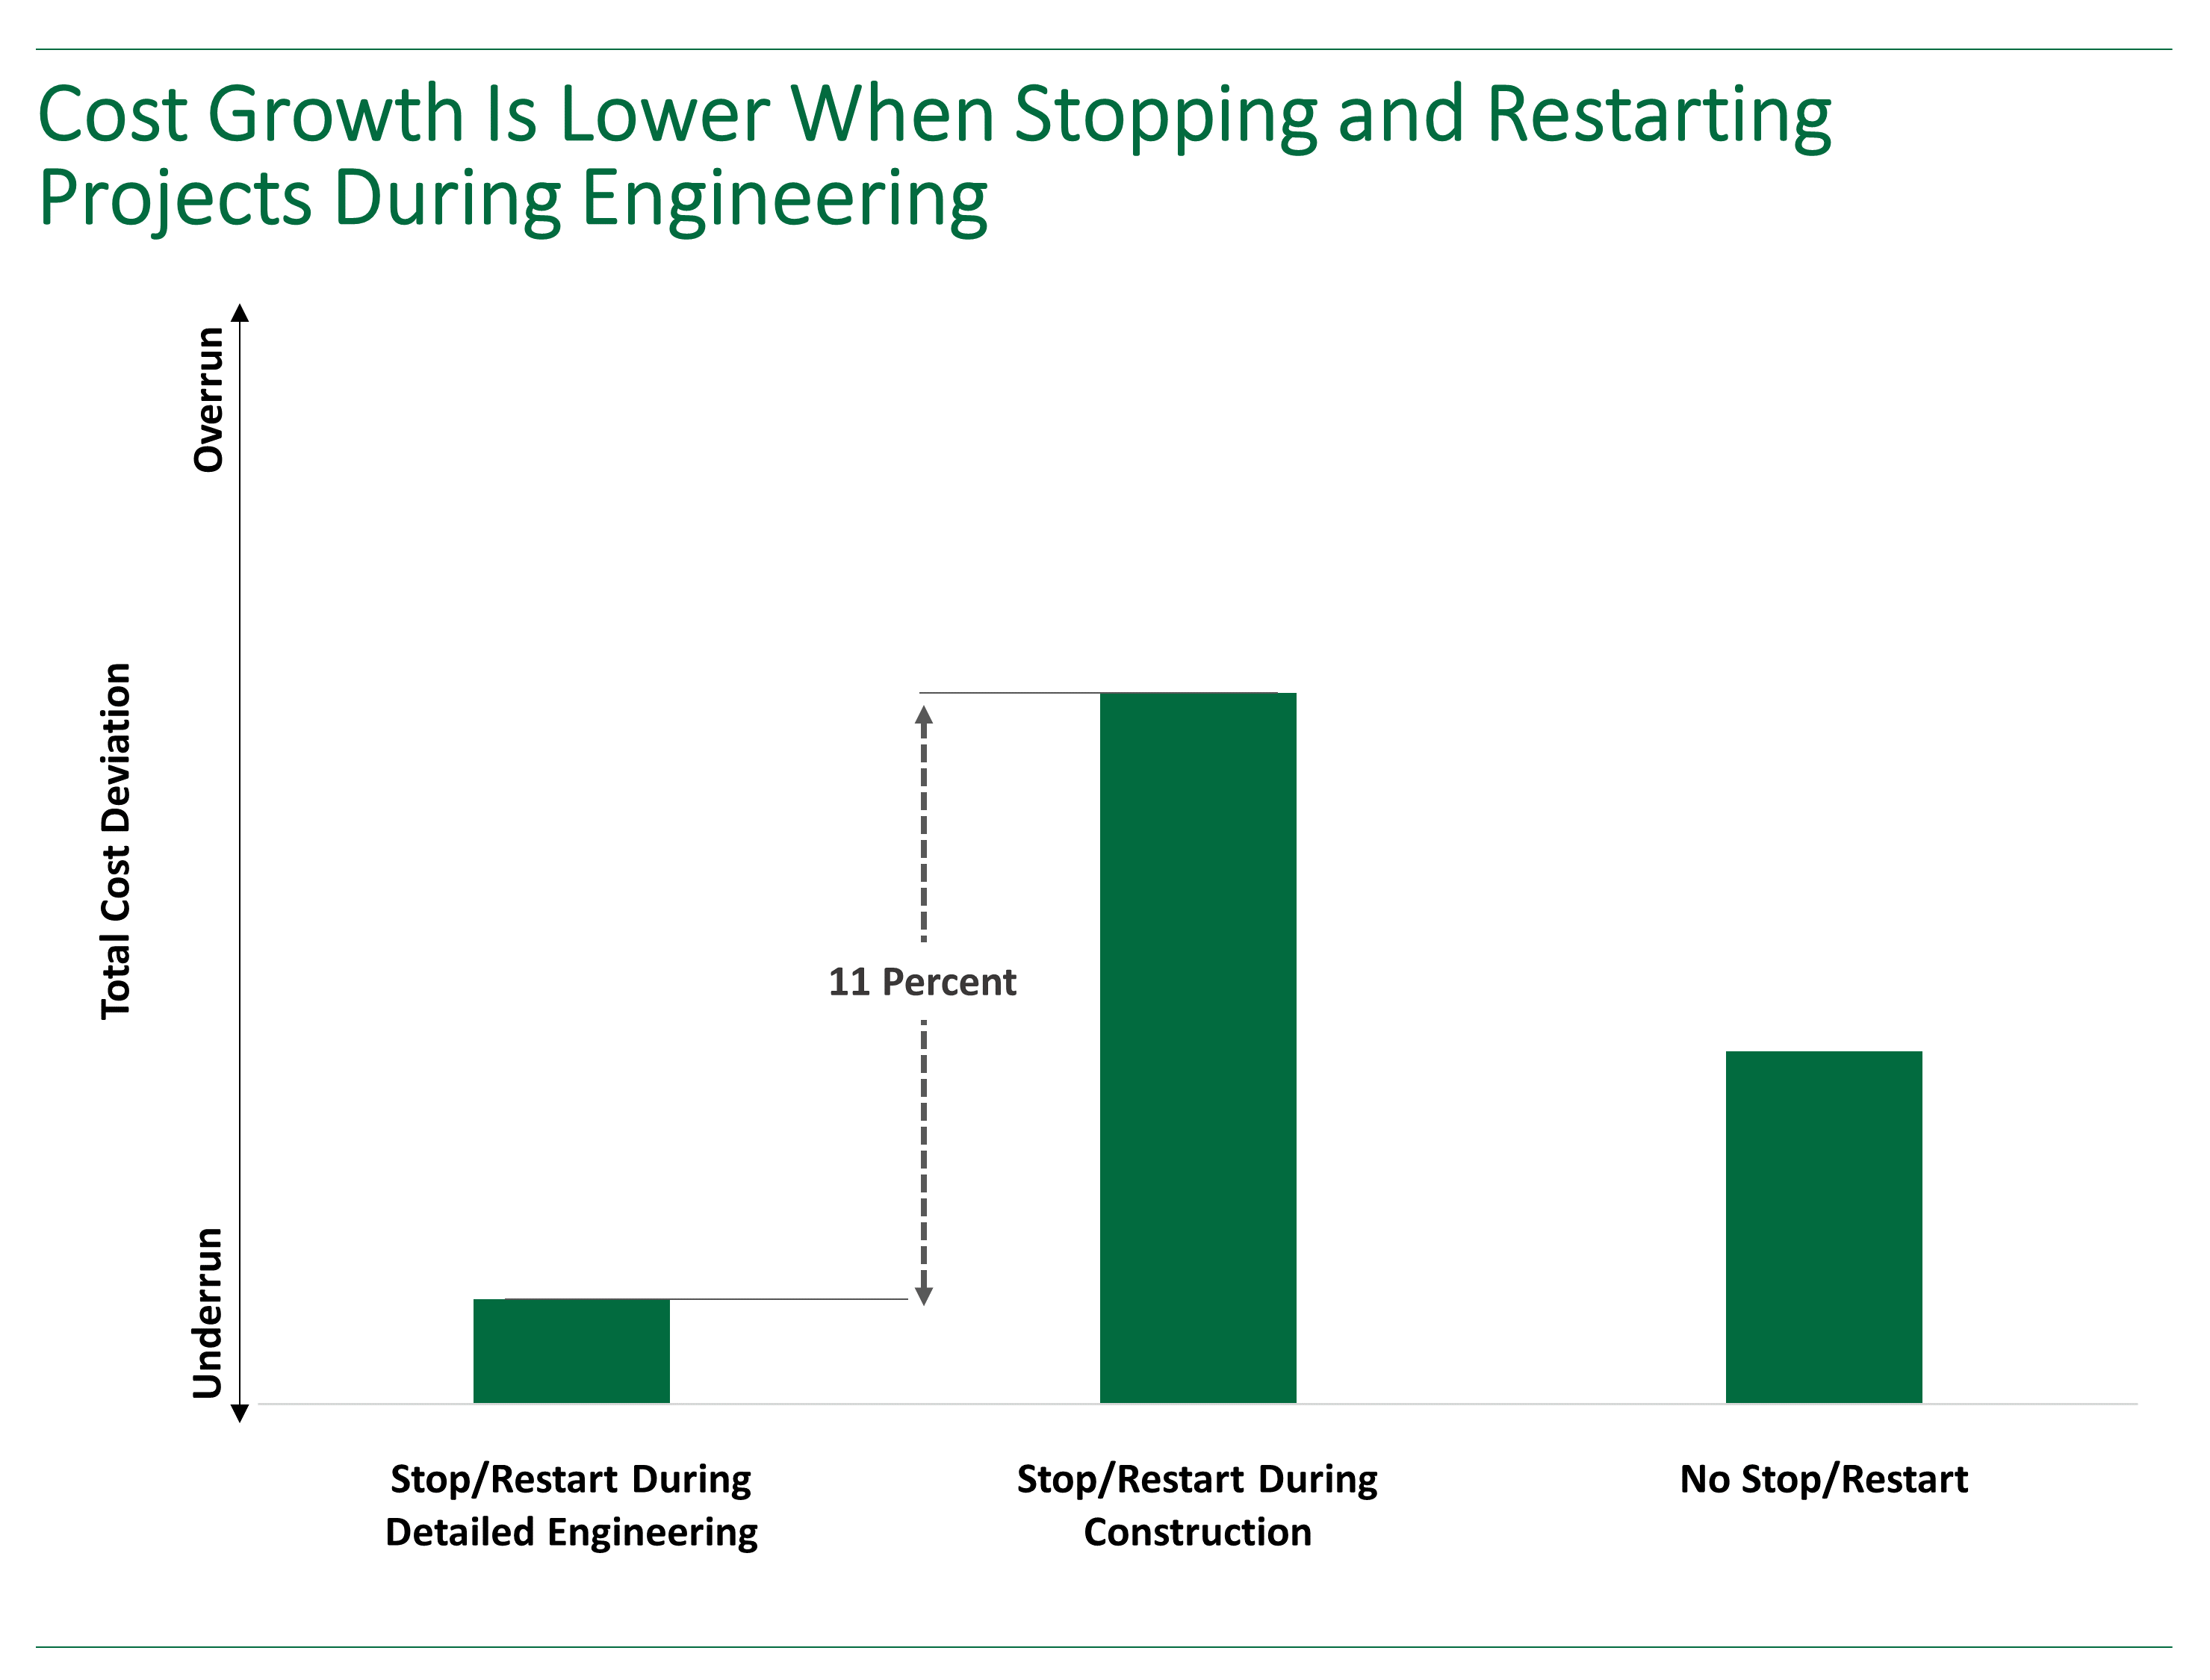 Bar chart showing how cost growth is 11 percent lower when stopping and restarting capital projects during engineering.